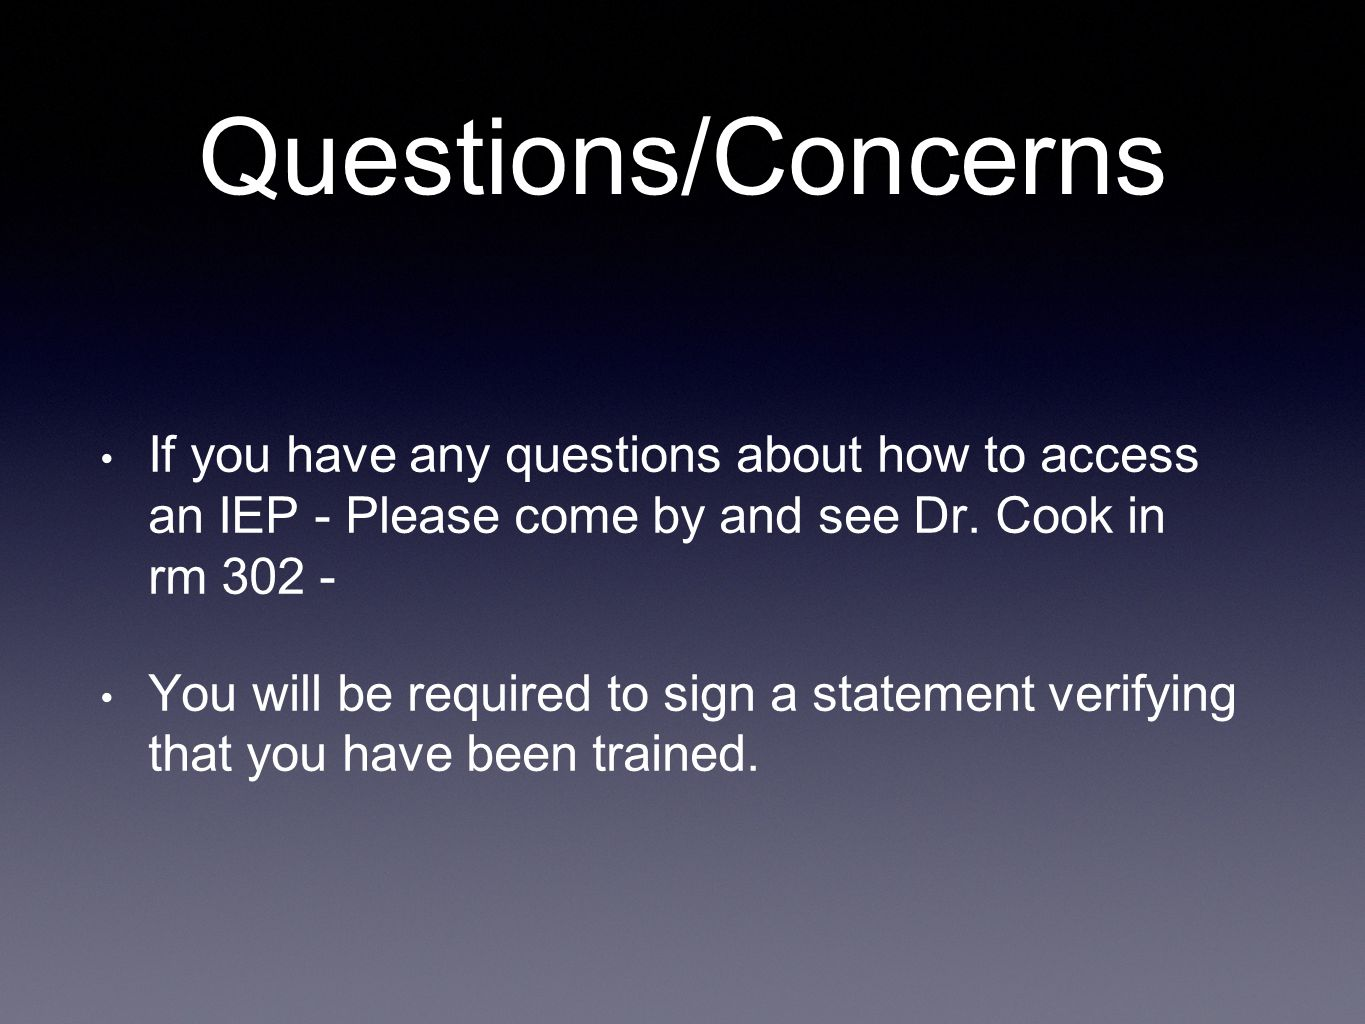 Questions/Concerns If you have any questions about how to access an IEP - Please come by and see Dr. Cook in rm 302 -